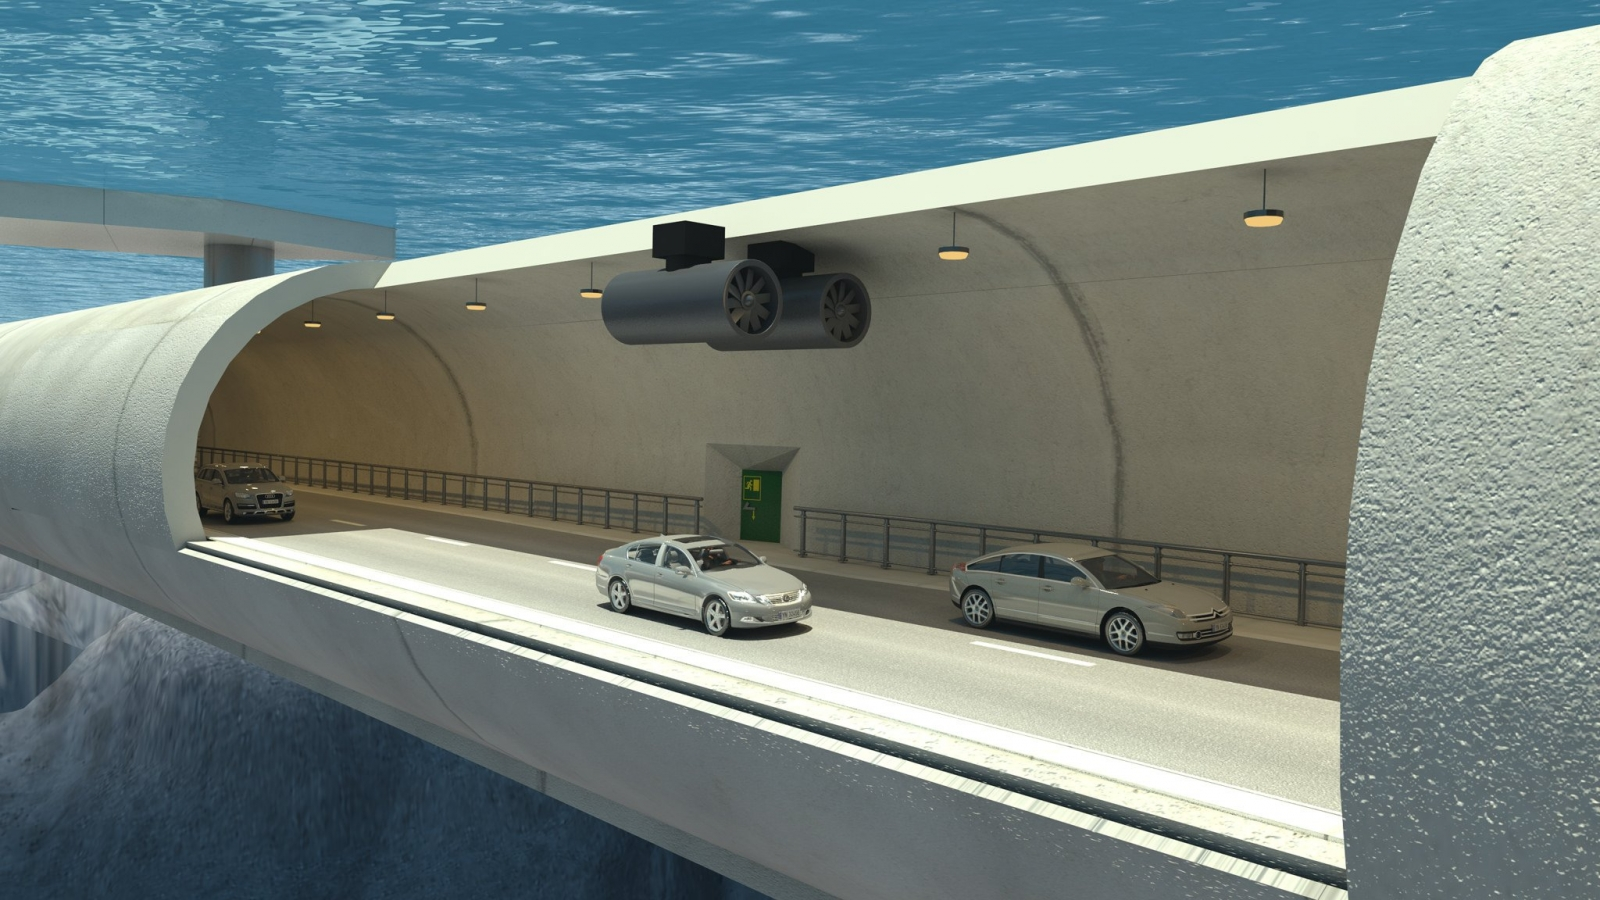 Sognefjord floating underwater tunnel